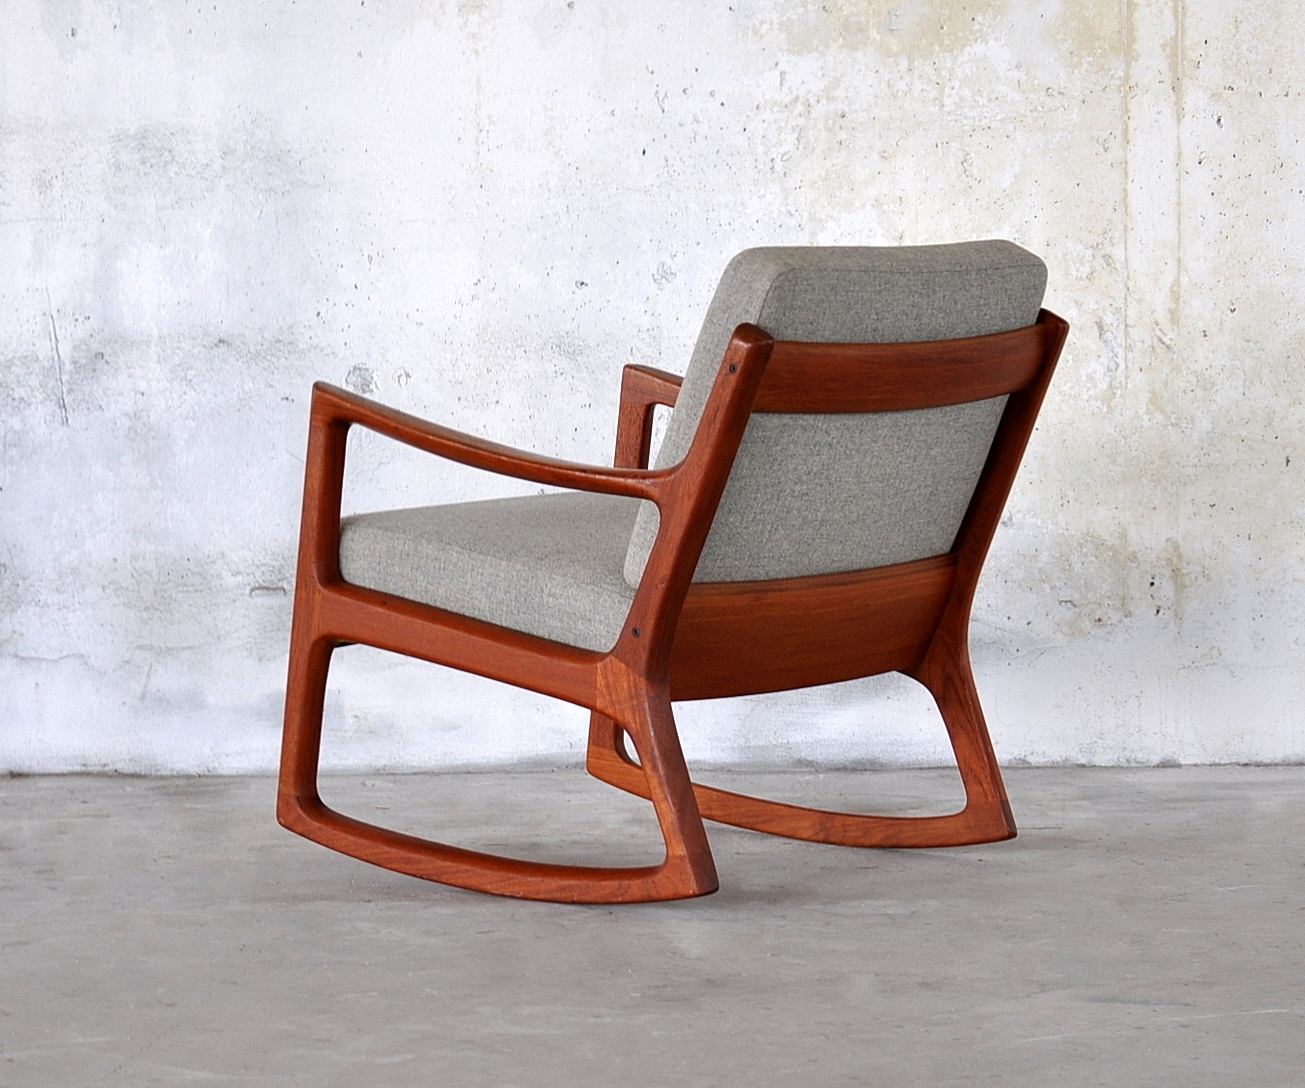 Contemporary Rocking Chair Uk — All Contemporary Design : Unique Within Modern Patio Rocking Chairs (#3 of 15)